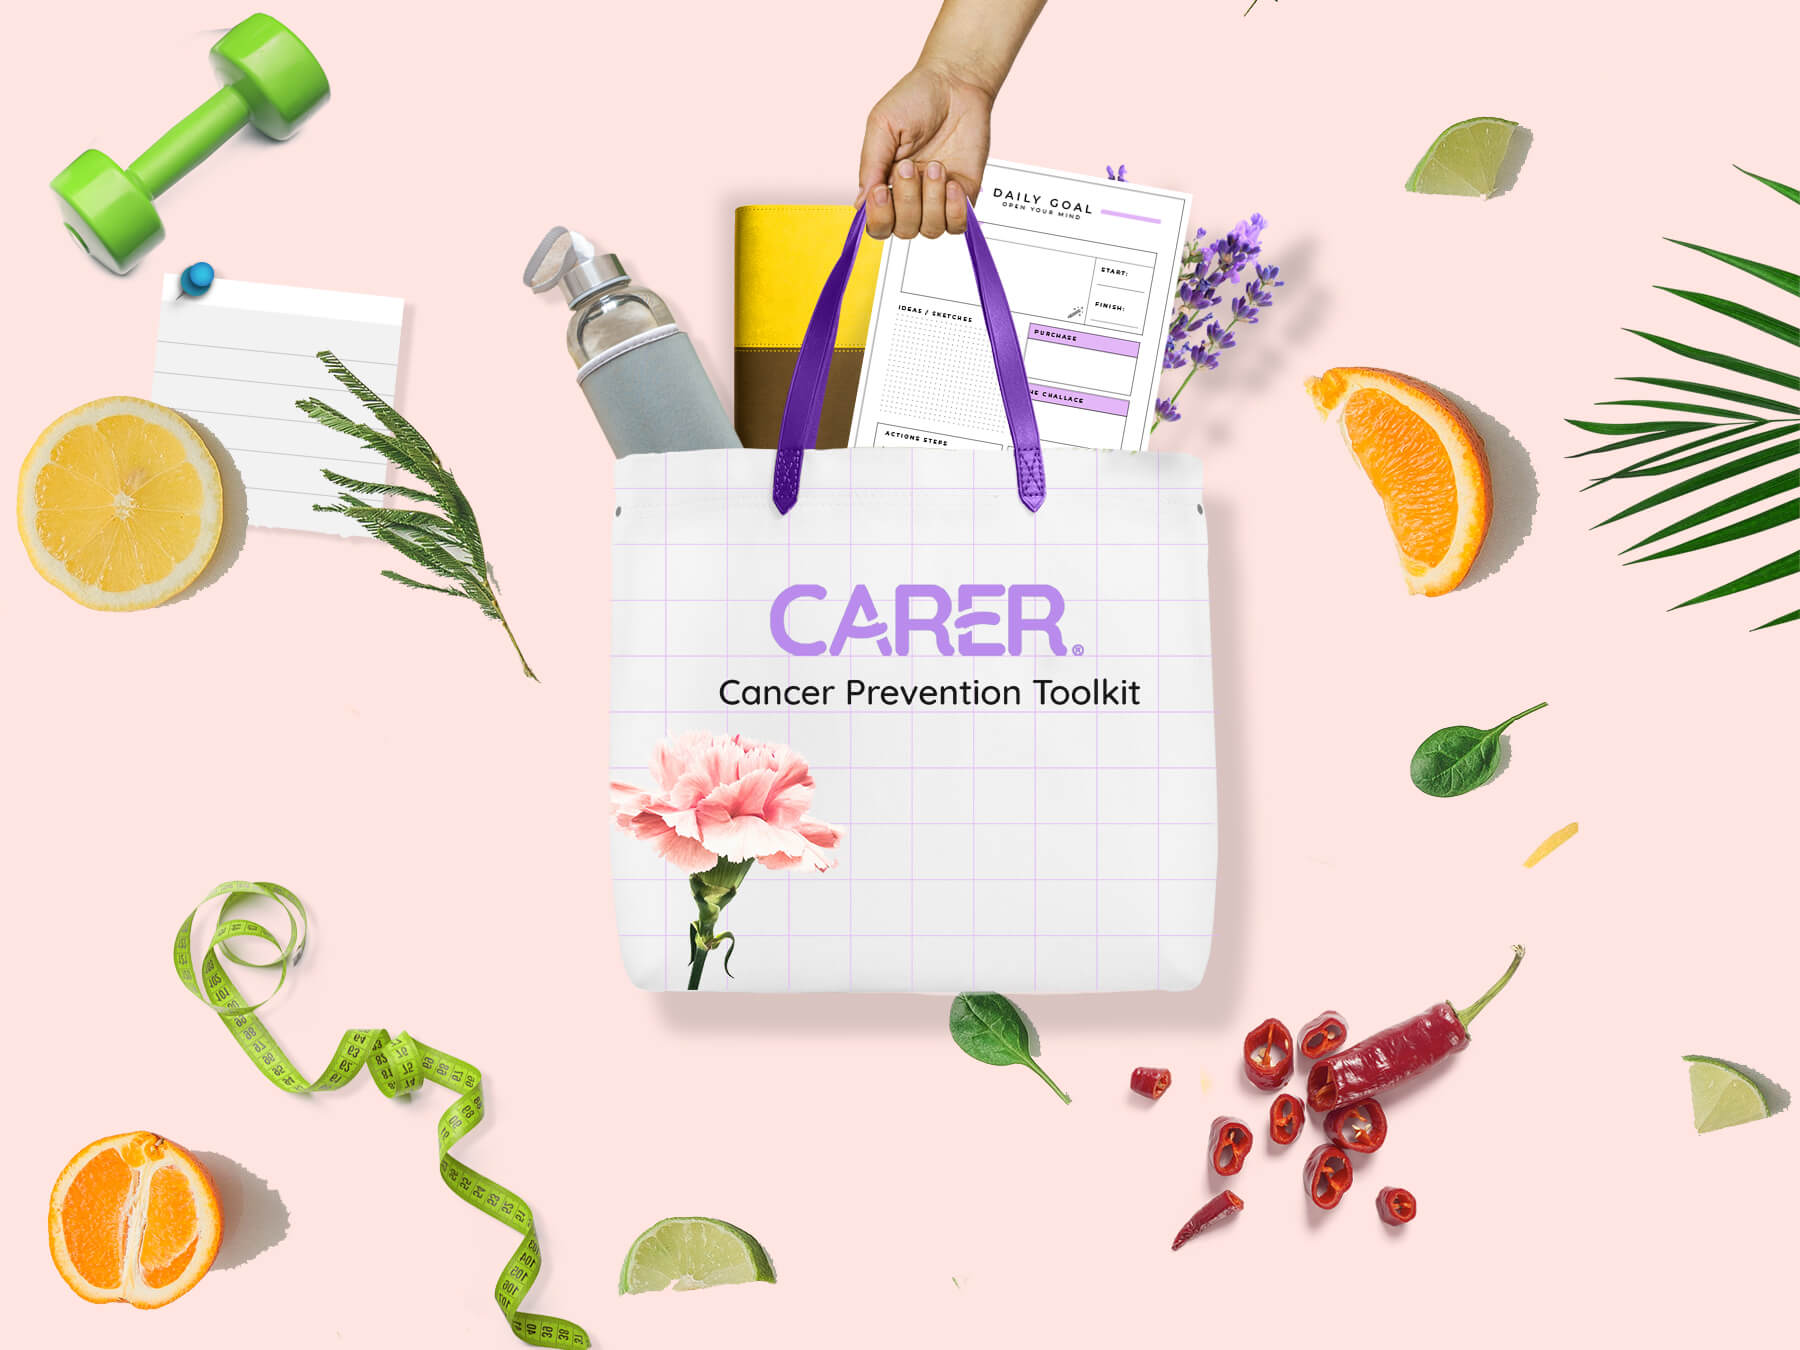 Cancer Prevention Toolkit